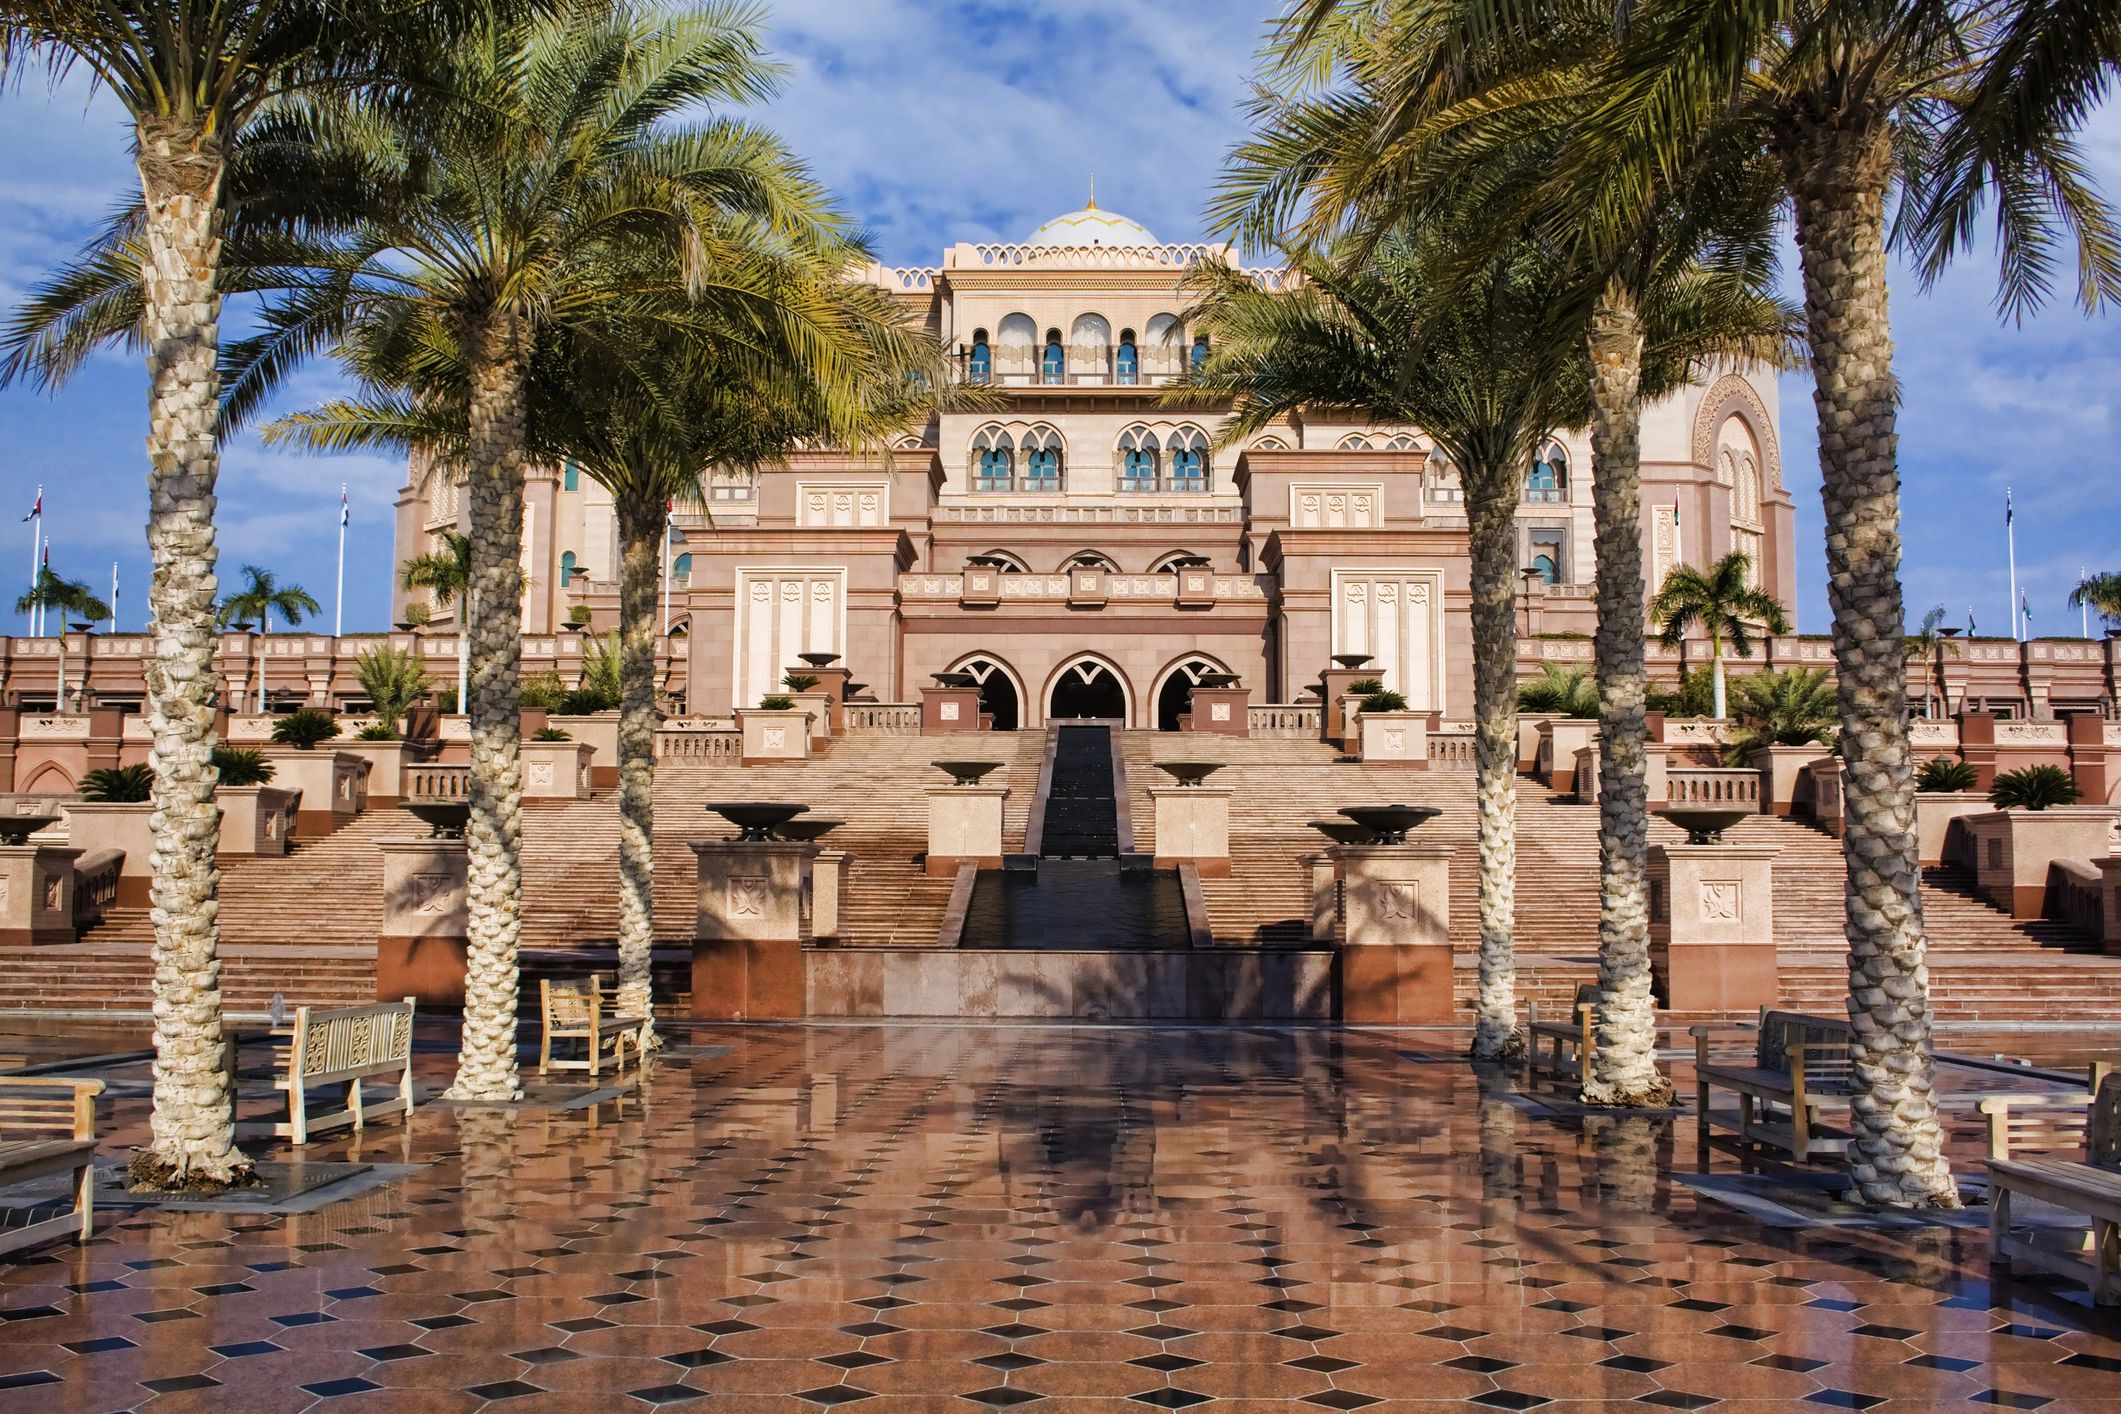 Exterior view of Abu Dhabi's Emirates Palace Hotel